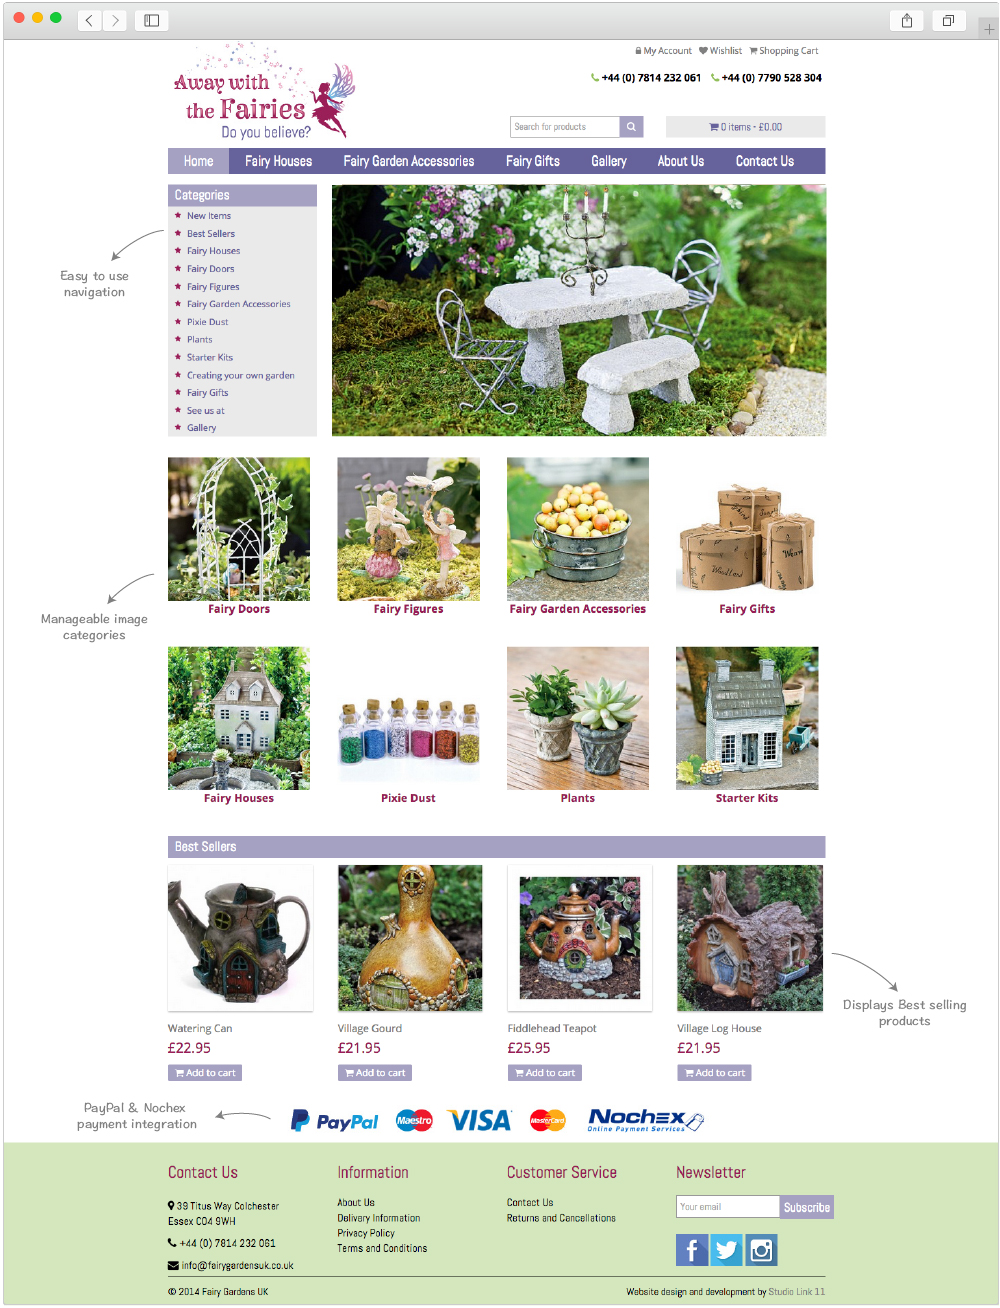 Fairy Gardens home page design by Studio Link 11